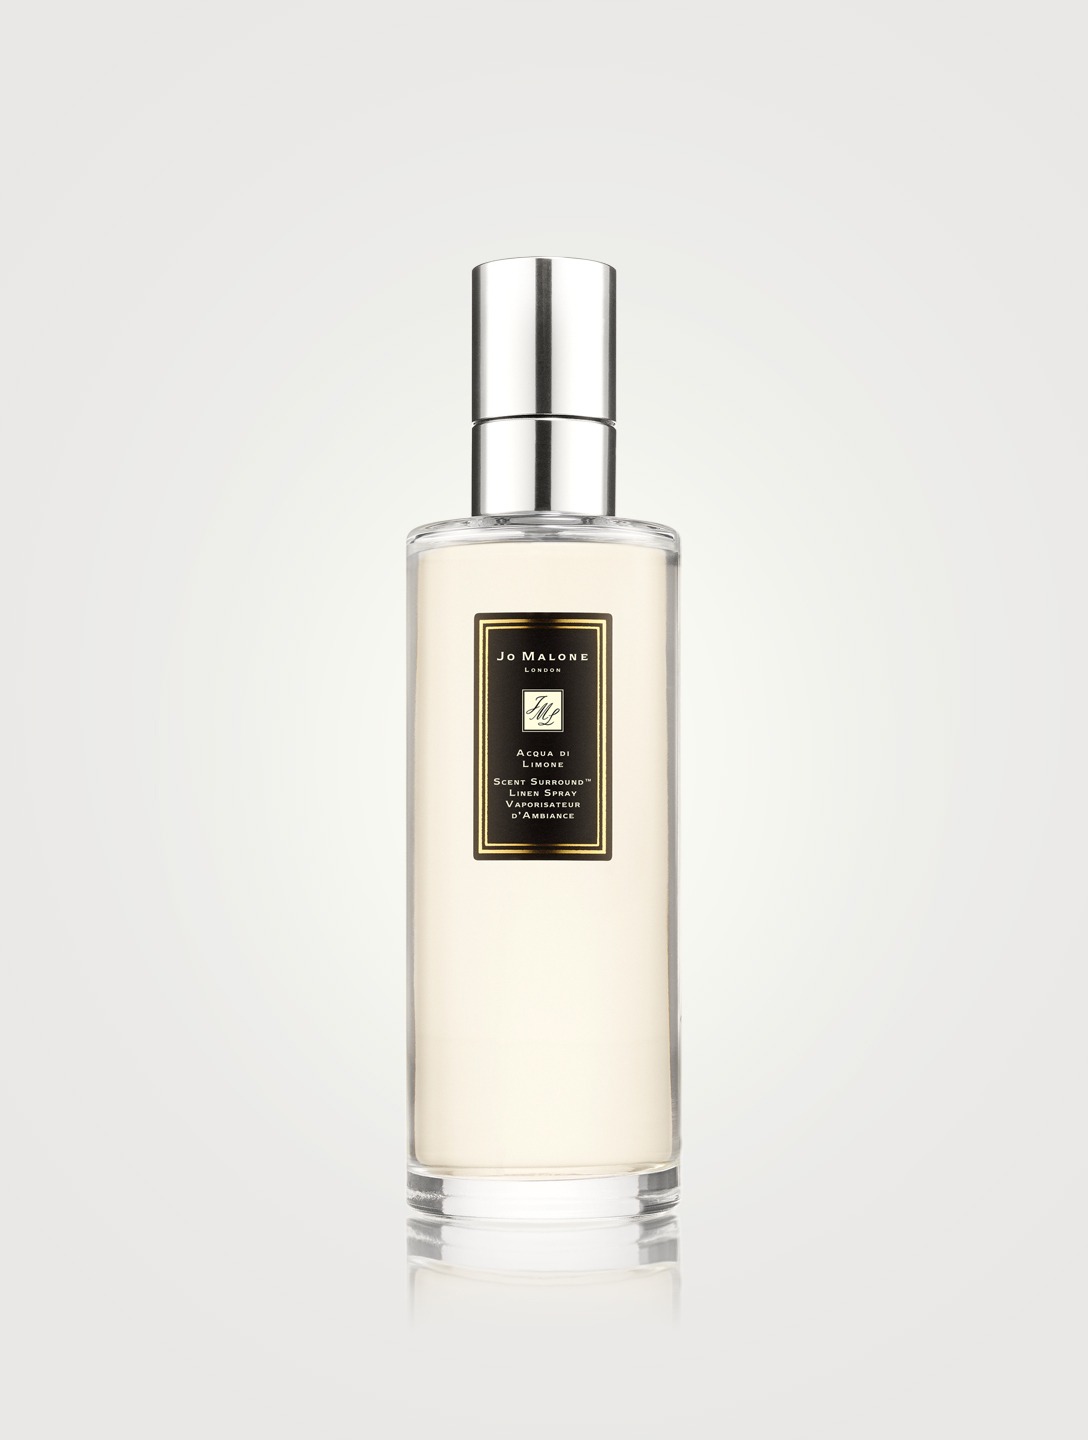 JO MALONE LONDON Acqua di Limone Scent Surround™ Linen Spray Beauty